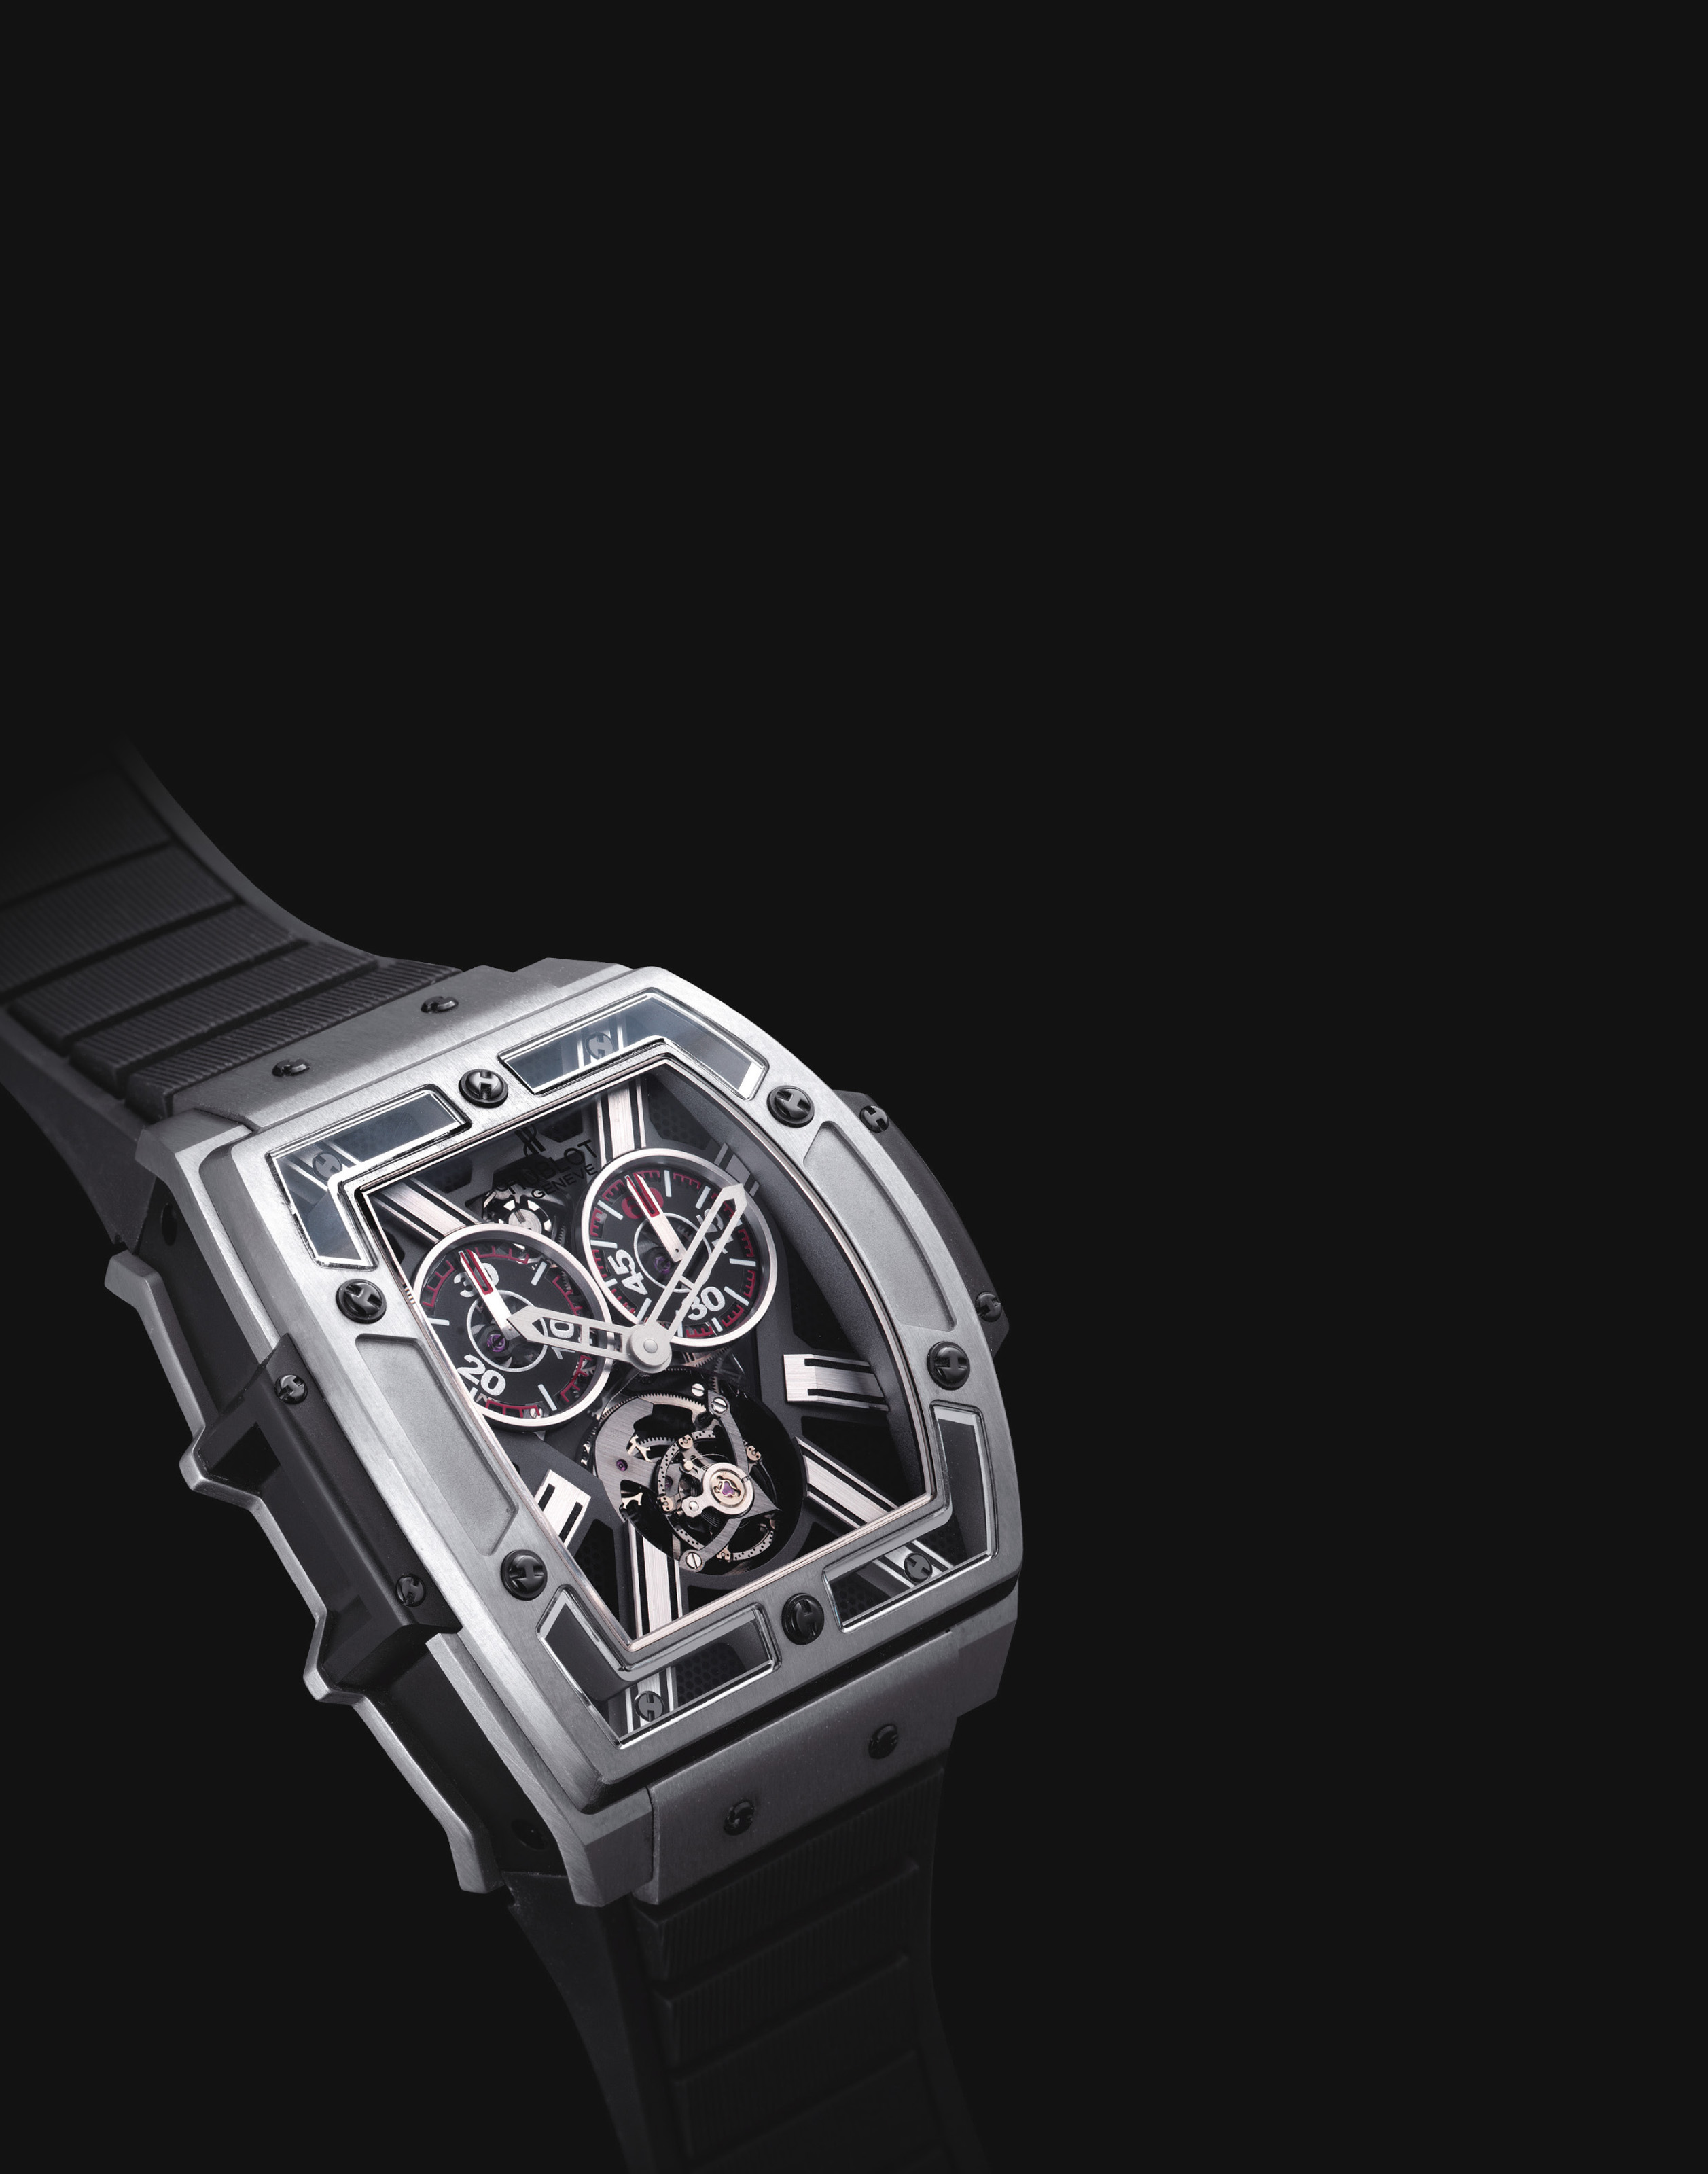 HUBLOT. A RARE AND OVERSIZED TITANIUM LIMITED EDITION TONNEAU-SHAPED SEMI-SKELETONISED SINGLE BUTTON CHRONOGRAPH TOURBILLON WRISTWATCH